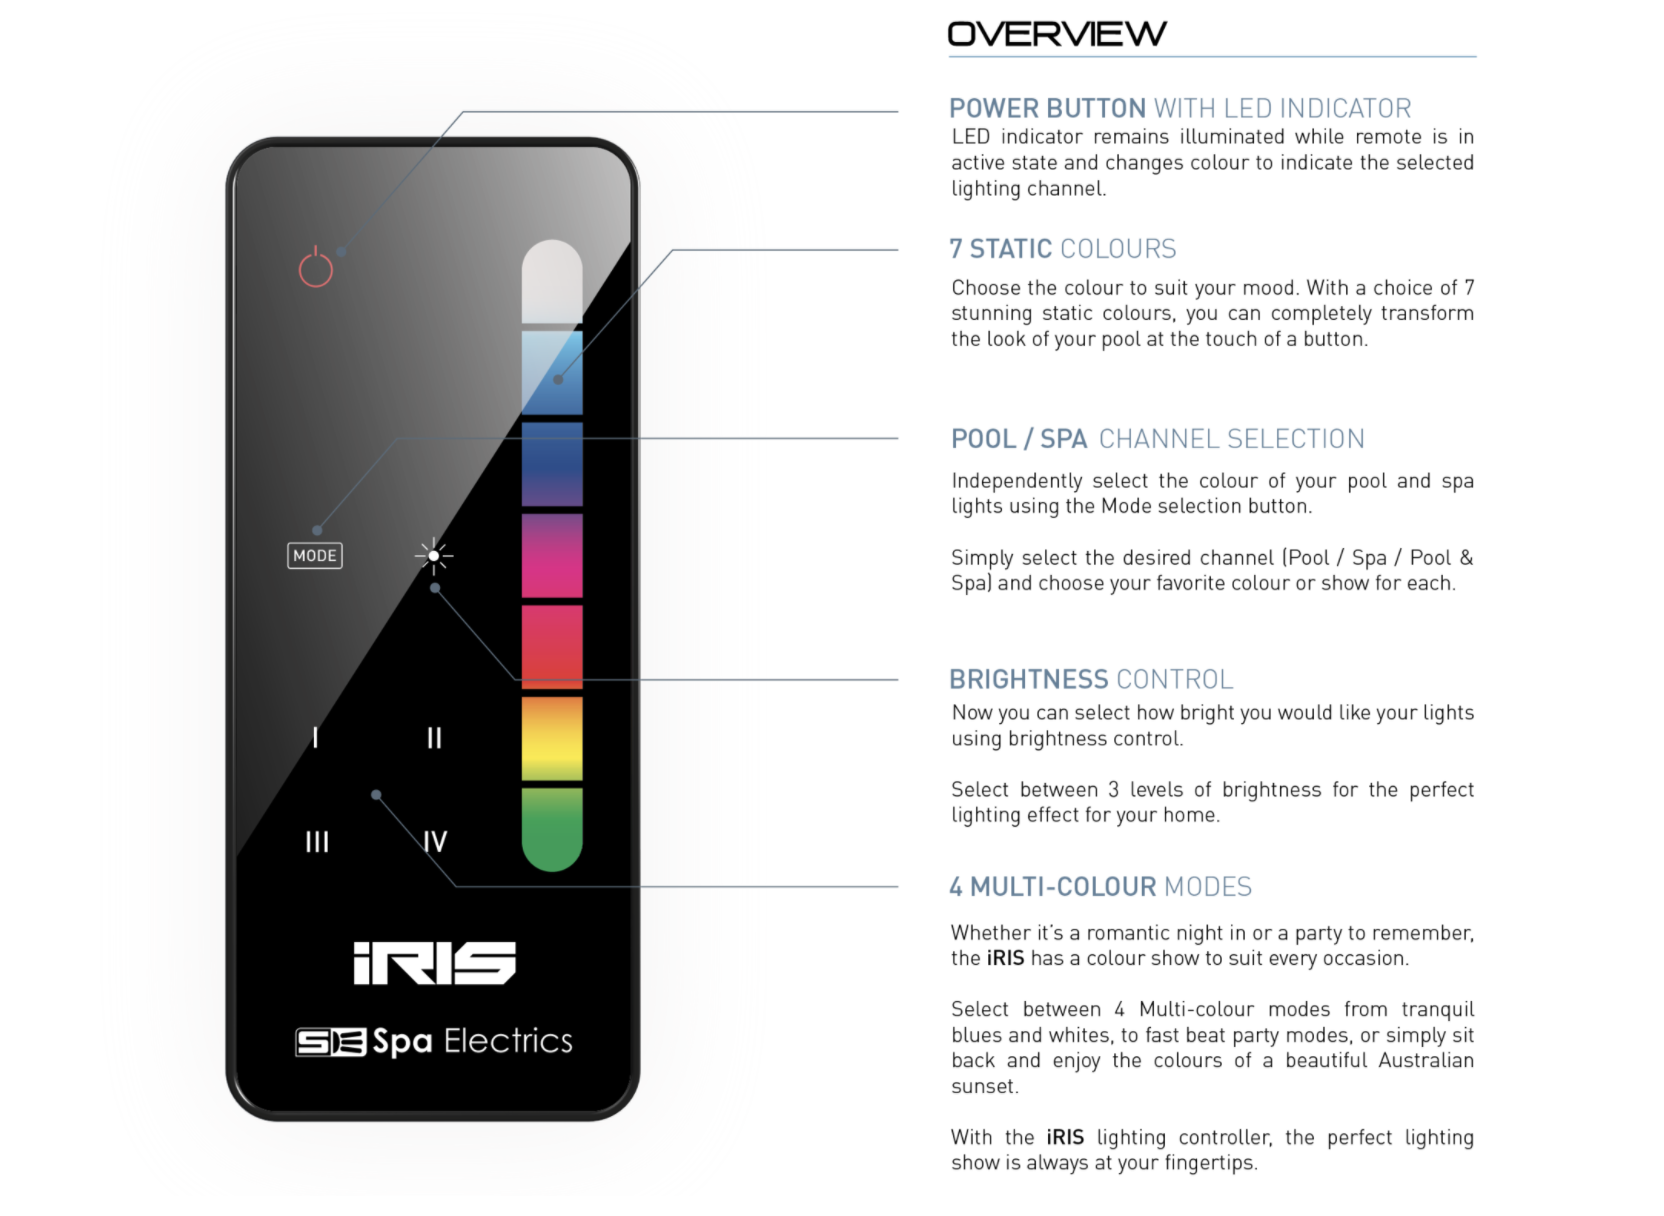 iRIS Spa Electircs Remote